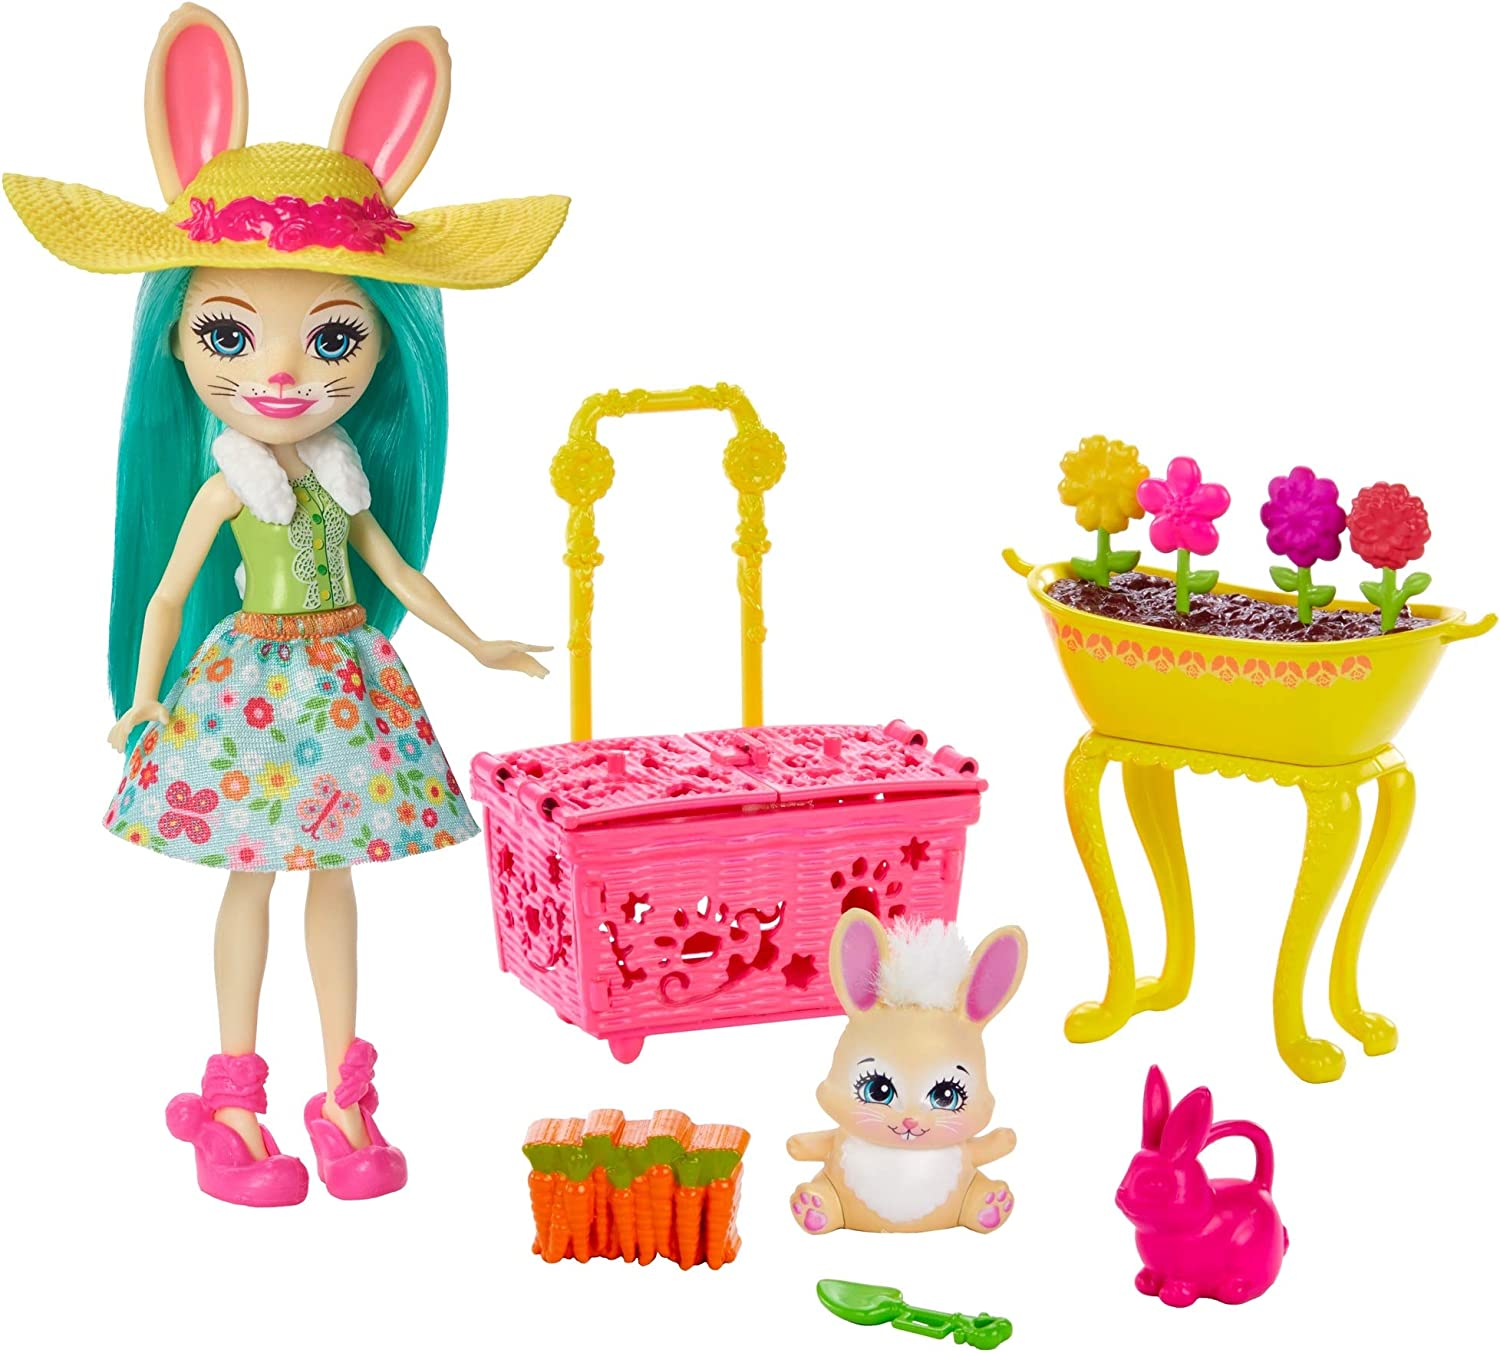 Enchantimals Bunny Blooms Playset with Fluffy Bunny Doll (6-in), Mop Animal Friend Figure, and 11+ Accessories